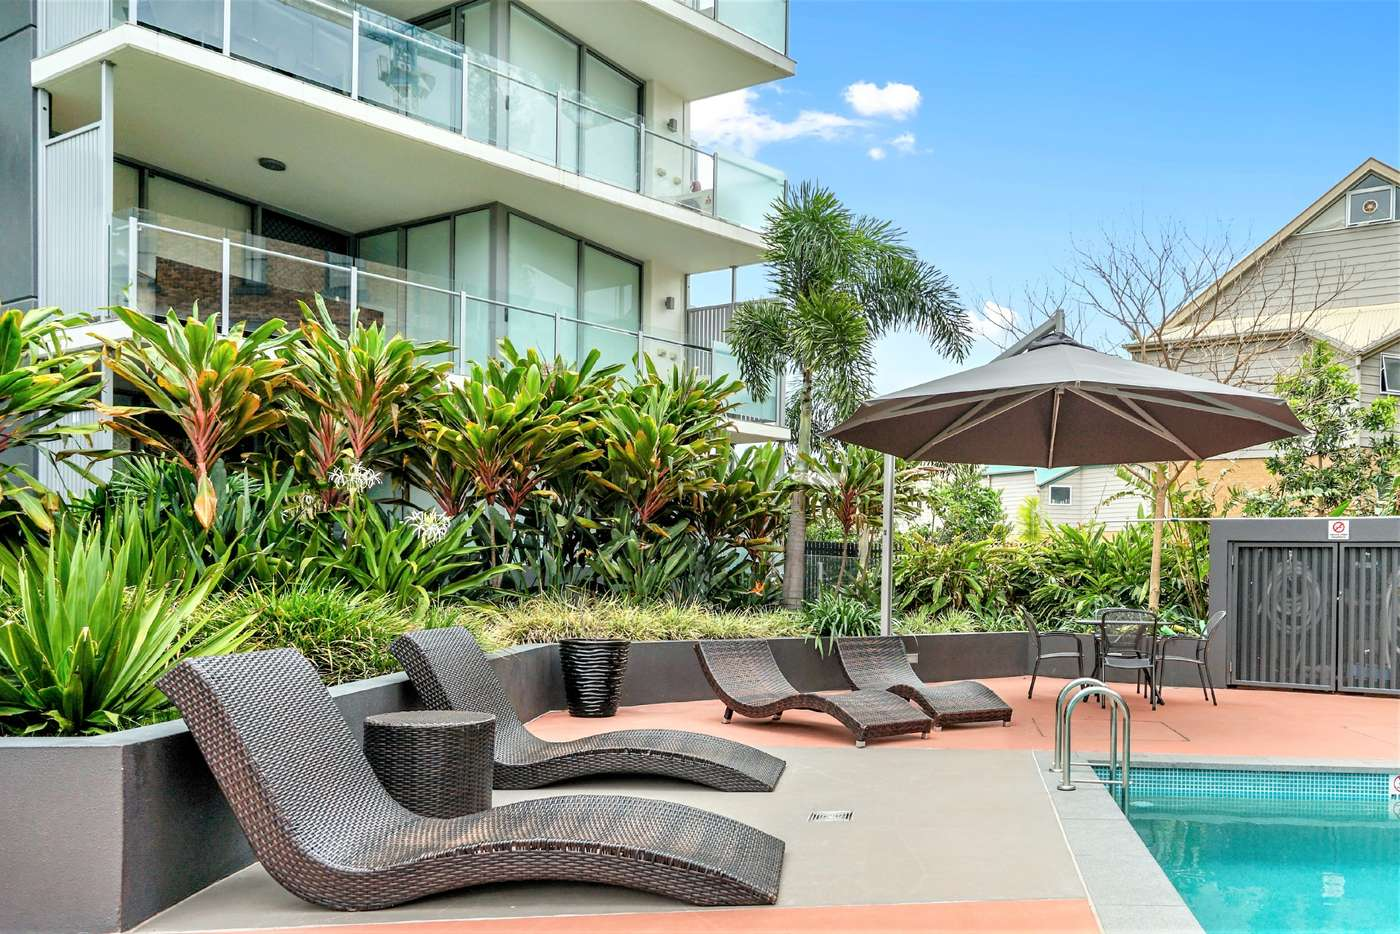 Main view of Homely apartment listing, 214/50 Connor Street, Kangaroo Point QLD 4169